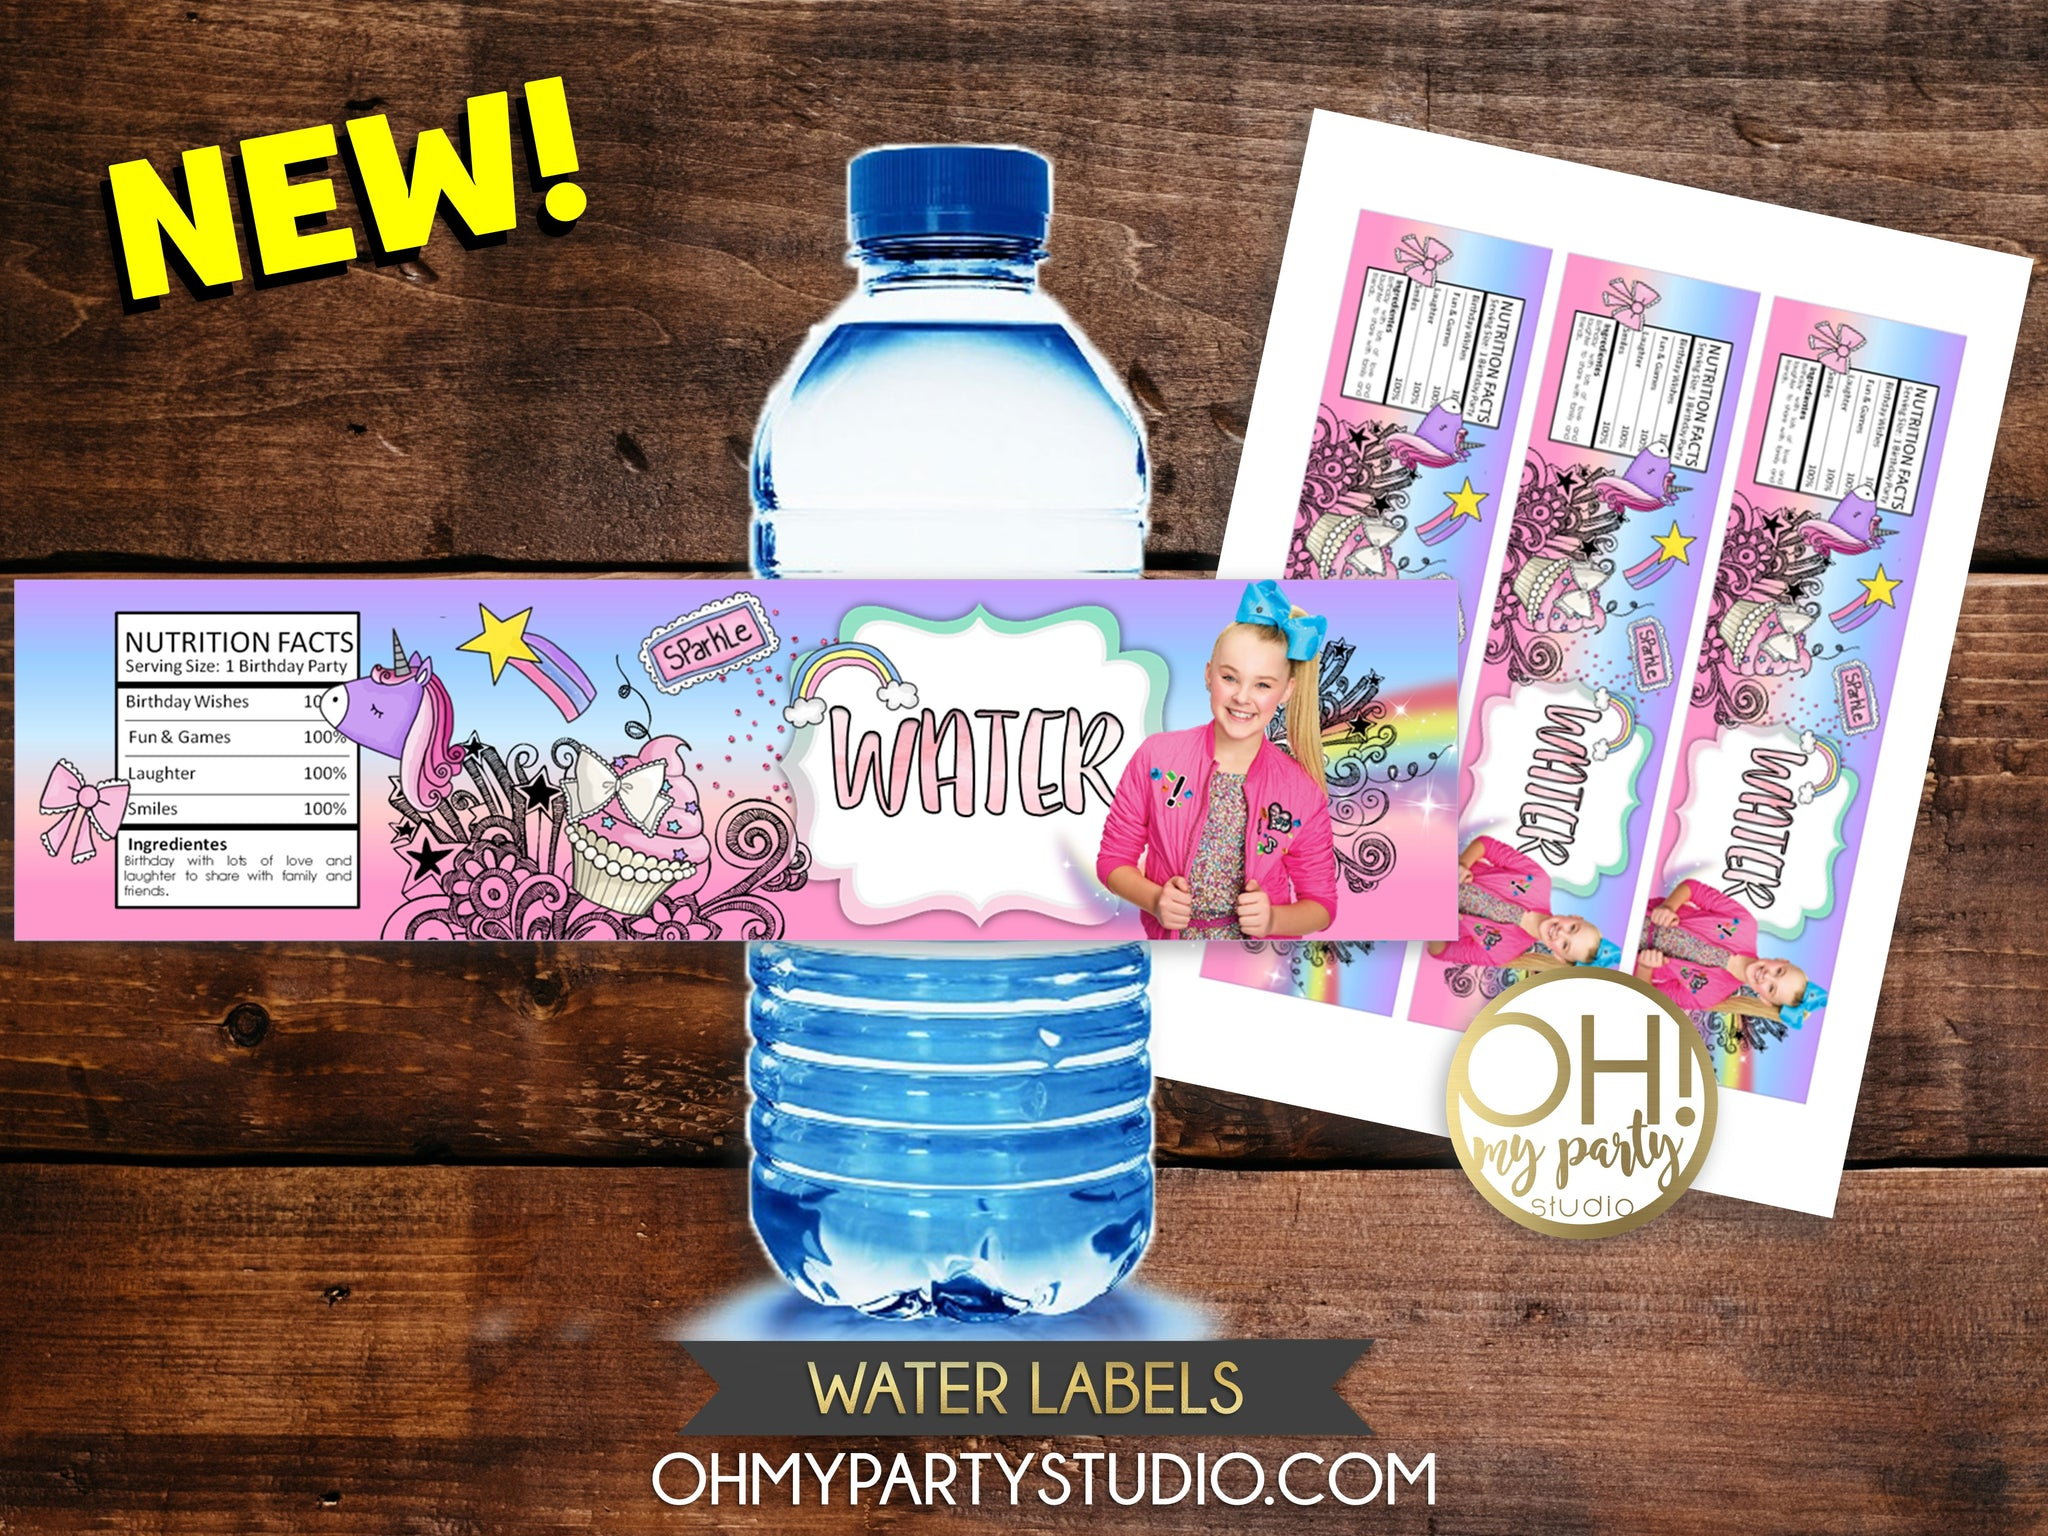 JOJO SIWA WATER LABELS, JOJO SIWA WATER, JOJO SIWA WATER BOTTLE, JOJO SIWA PARTY, JOJO SIWA PARTY DECORATIONS, JOJO SIWA PARTY PRINTABLES, JOJO SIWA PARTY IDEAS, JOJO SIWA PARTY THEME,JOJO SIWA PRINTABLES, JOJO SIWA INVITATION, JOJO SIWA INVITATIONS